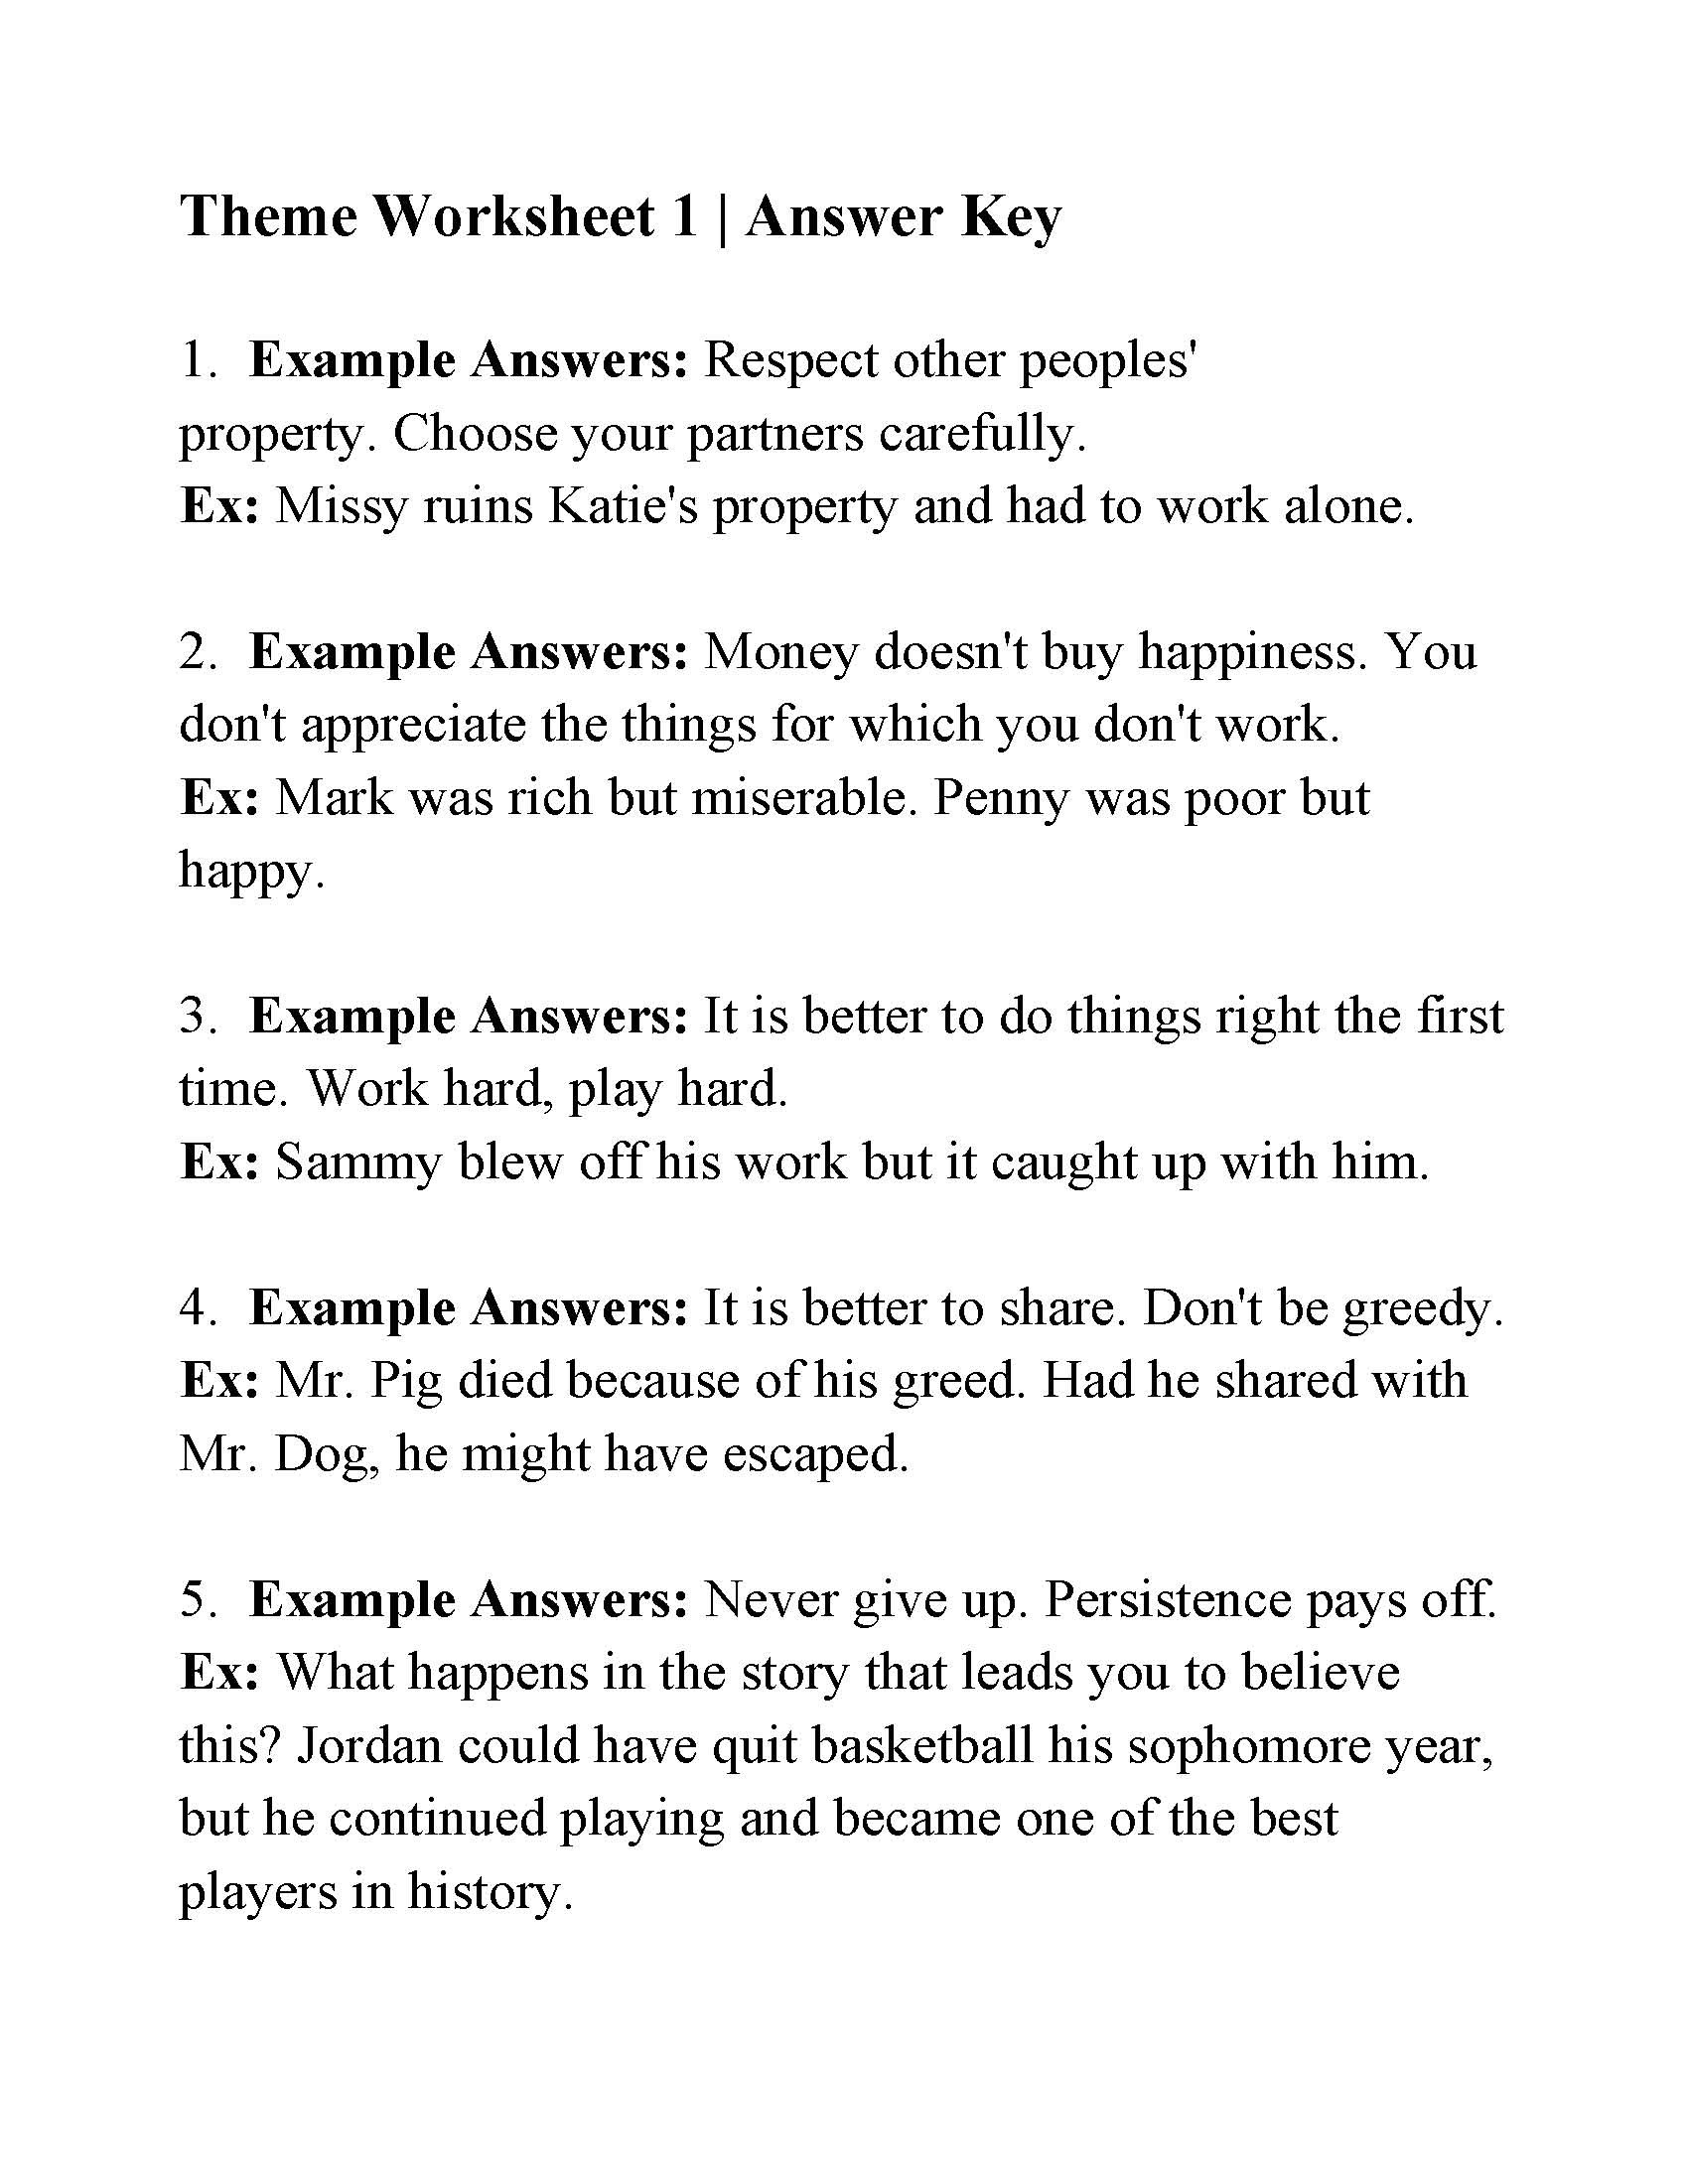 5th Grade theme Worksheets theme Worksheet 1